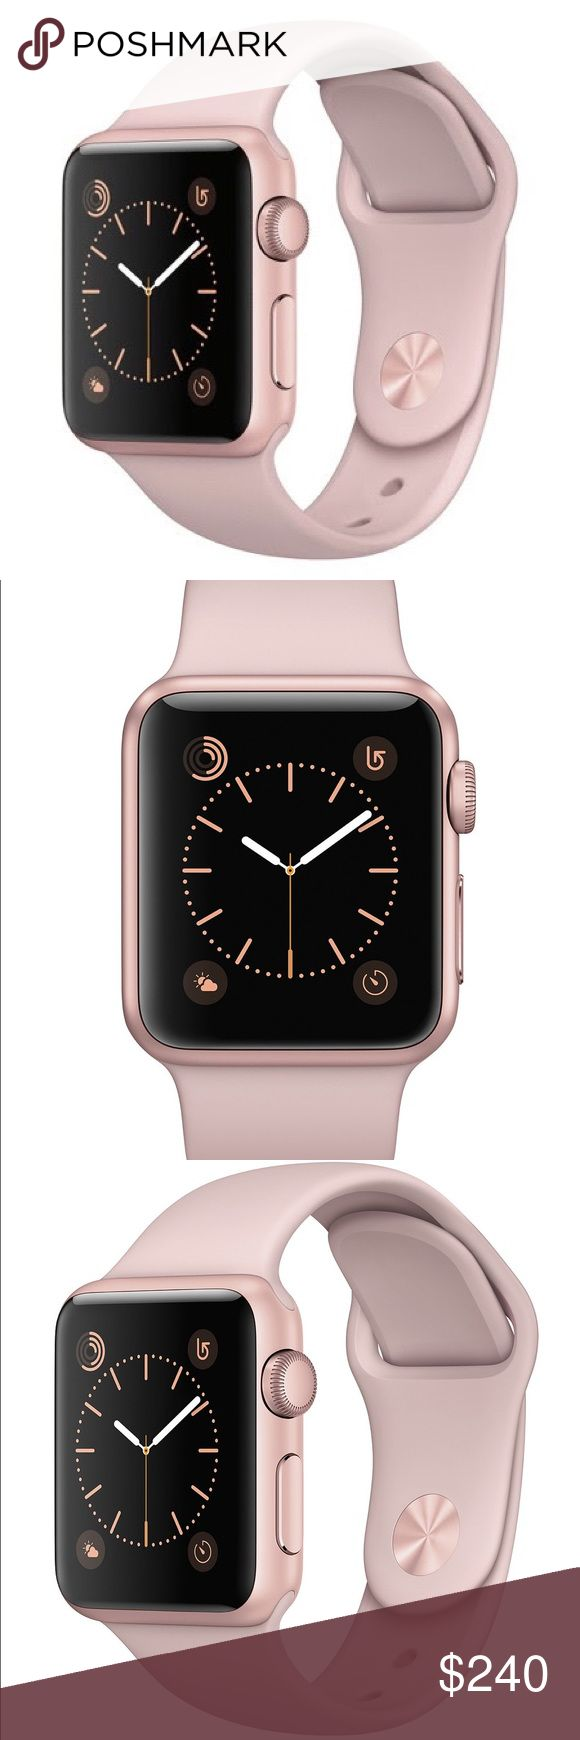 Apple Watch Series 1 Rose Gold Case with Pink Band Durable, lightweight aluminum cases in silver, space gray, gold, and rose gold. Sport Band in a variety of colors. All the features of the original Apple Watch, plus a new dual-core processor for faster performance. All models run watchOS 3. Apple Accessories Watches